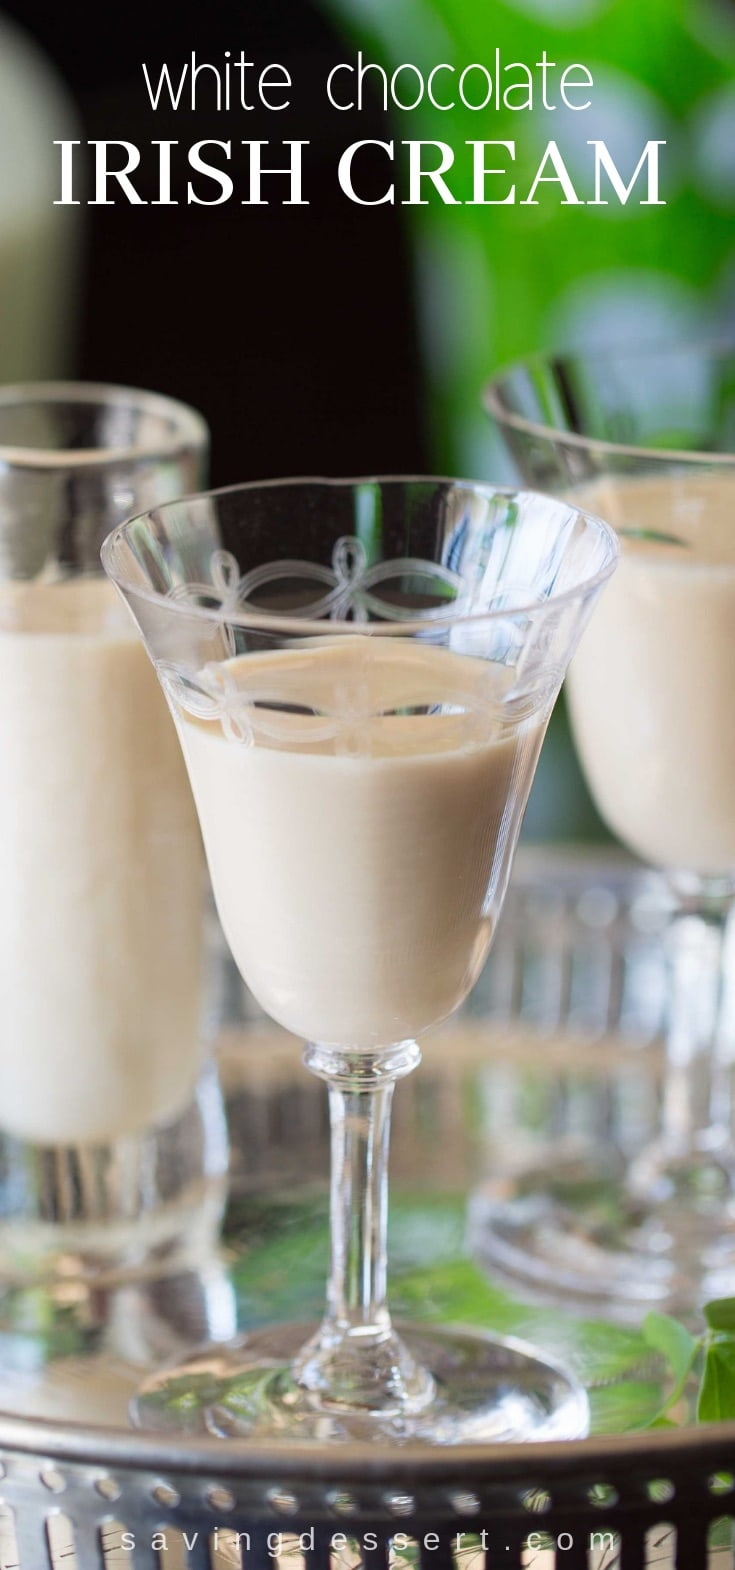 White Chocolate Irish Cream - Creamy, dreamy, smooth and delicious! A wonderful after dinner drink that tastes like dessert! #Irish #Irishcream #whitechocolate #cordial #afterdinner #beverage #cocktail #stpatricksday